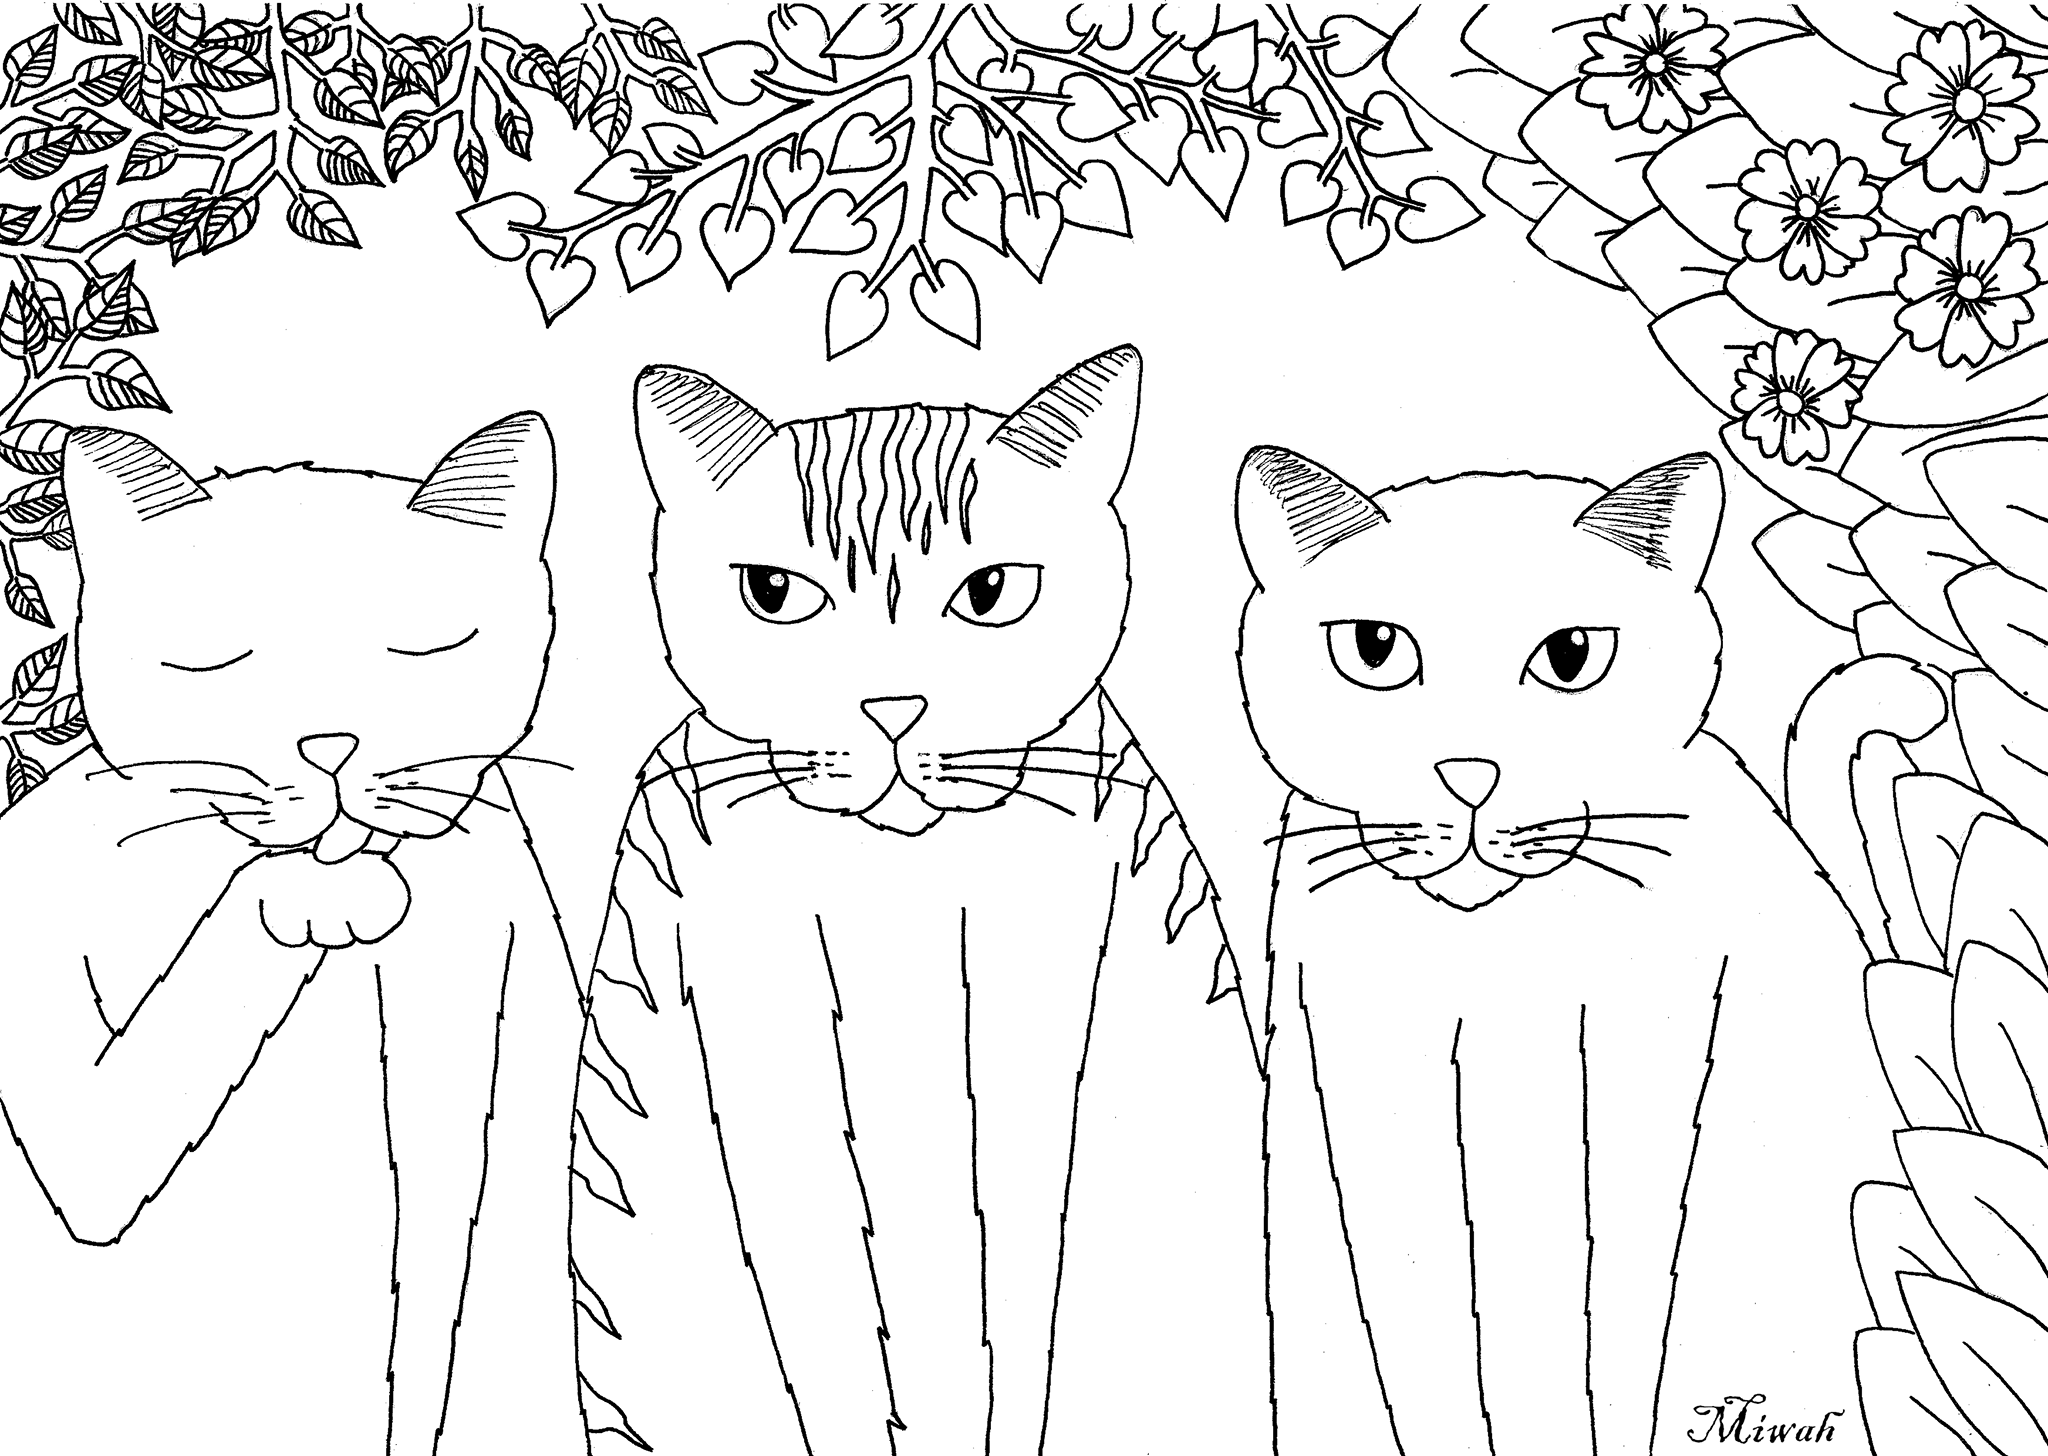 Tree little funny kittens, Simple coloring page